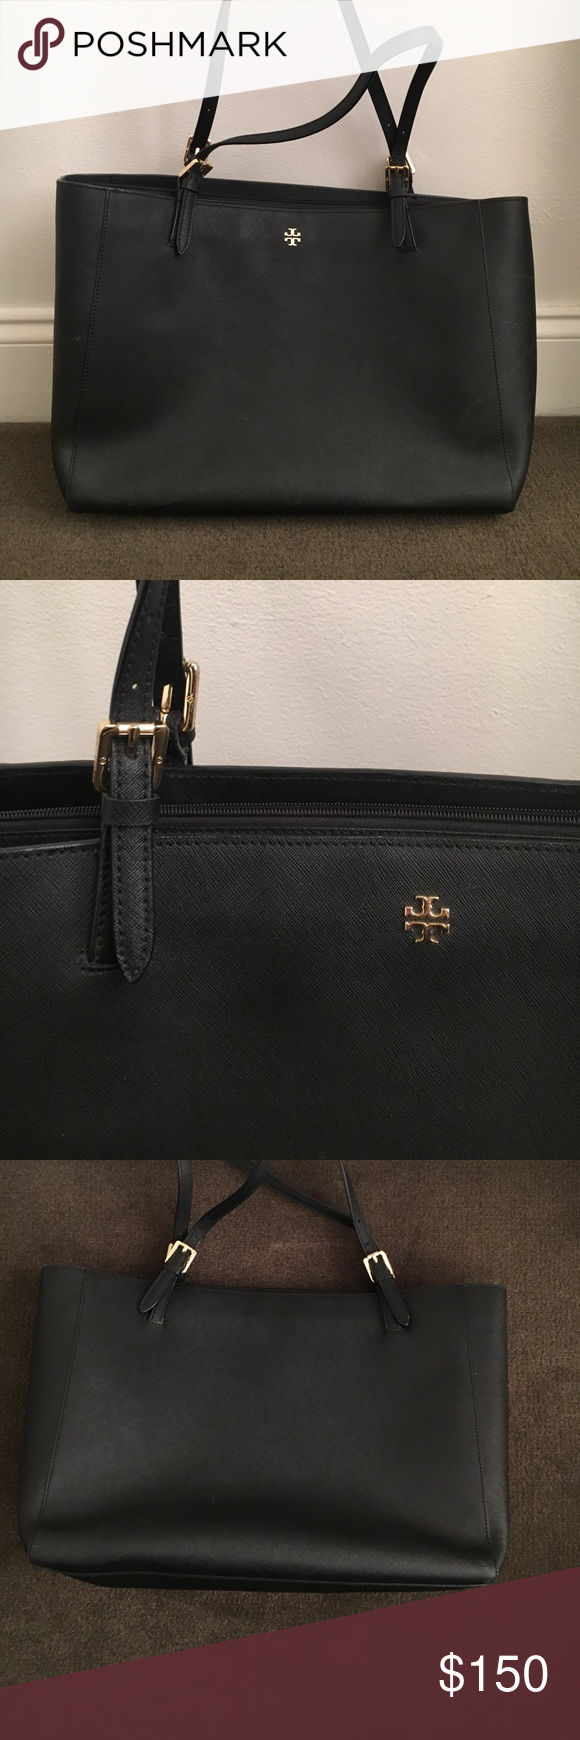 Black Tory Burch York Tote Large Great Condition But Does Have Scratches Across Bag See Pictures These Do Not Wash Off And I Tried To Color